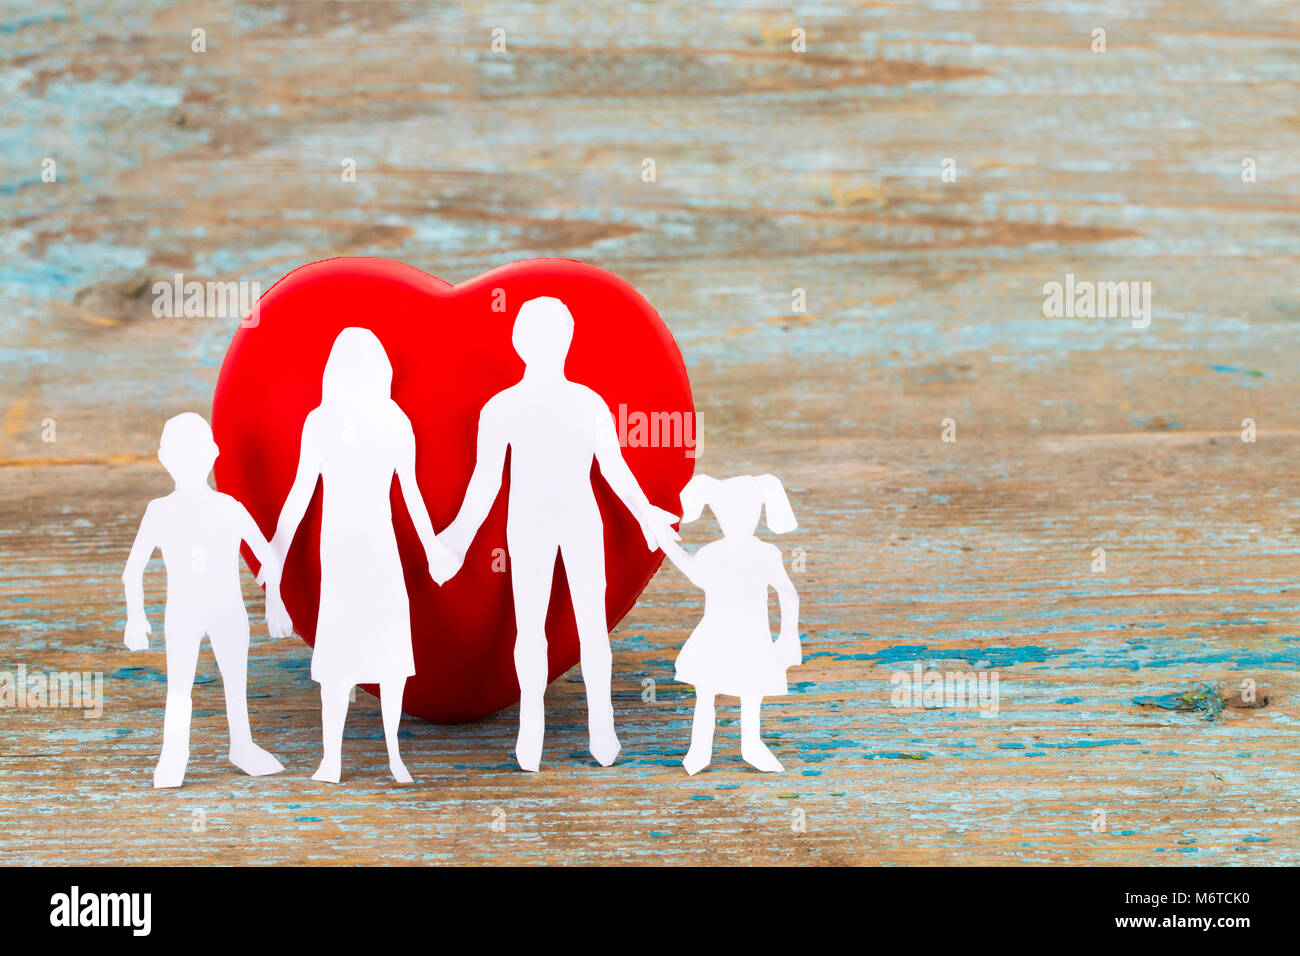 Paper silhouette of family and heart on wooden background. Health insurance concept with copy space. - Stock Image